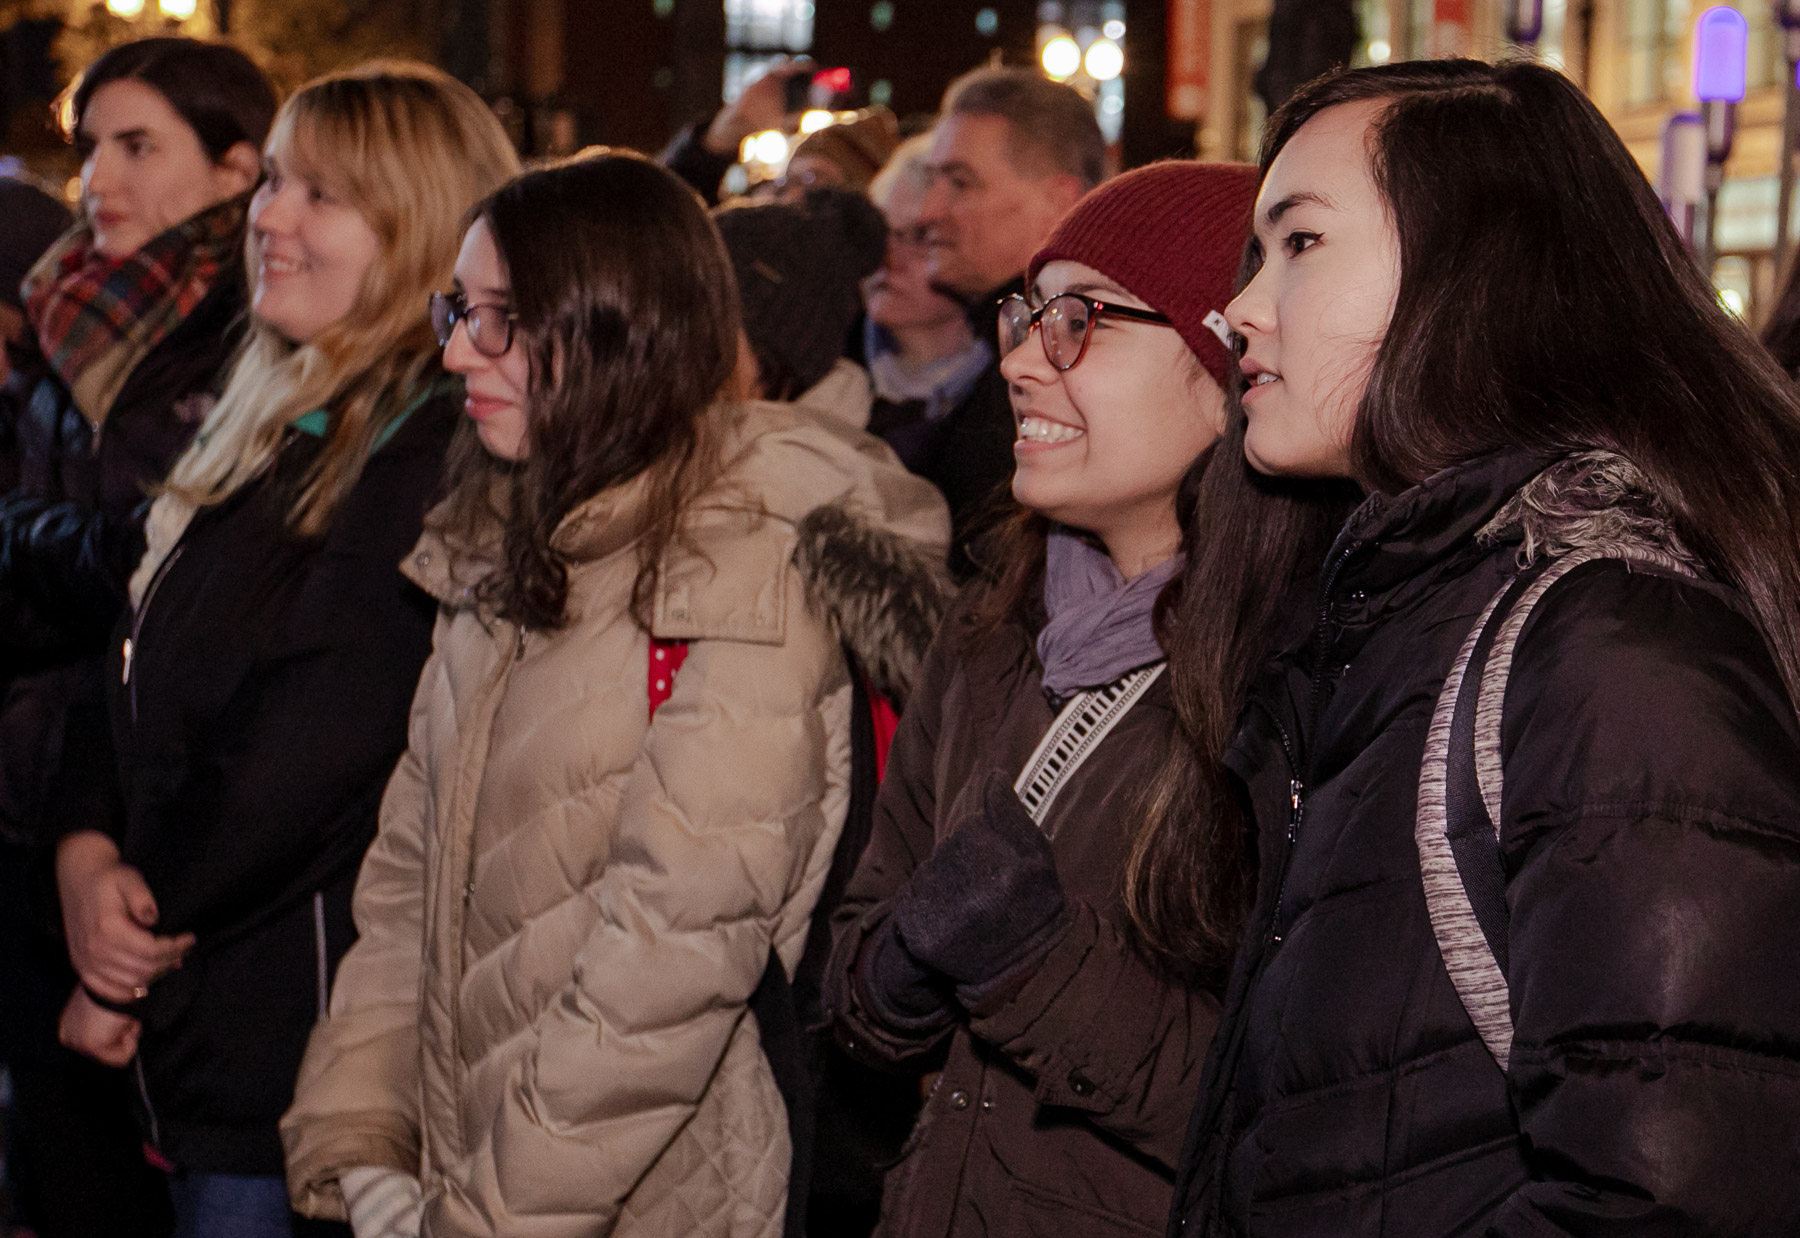 Students, faculty and staff watch the stop-motion film after its debut on State Street. The Merry Christmas from DePaul window utilizes state-of-the-art technology to build an imaginative, 3-D experience. (DePaul University/Randall Spriggs)